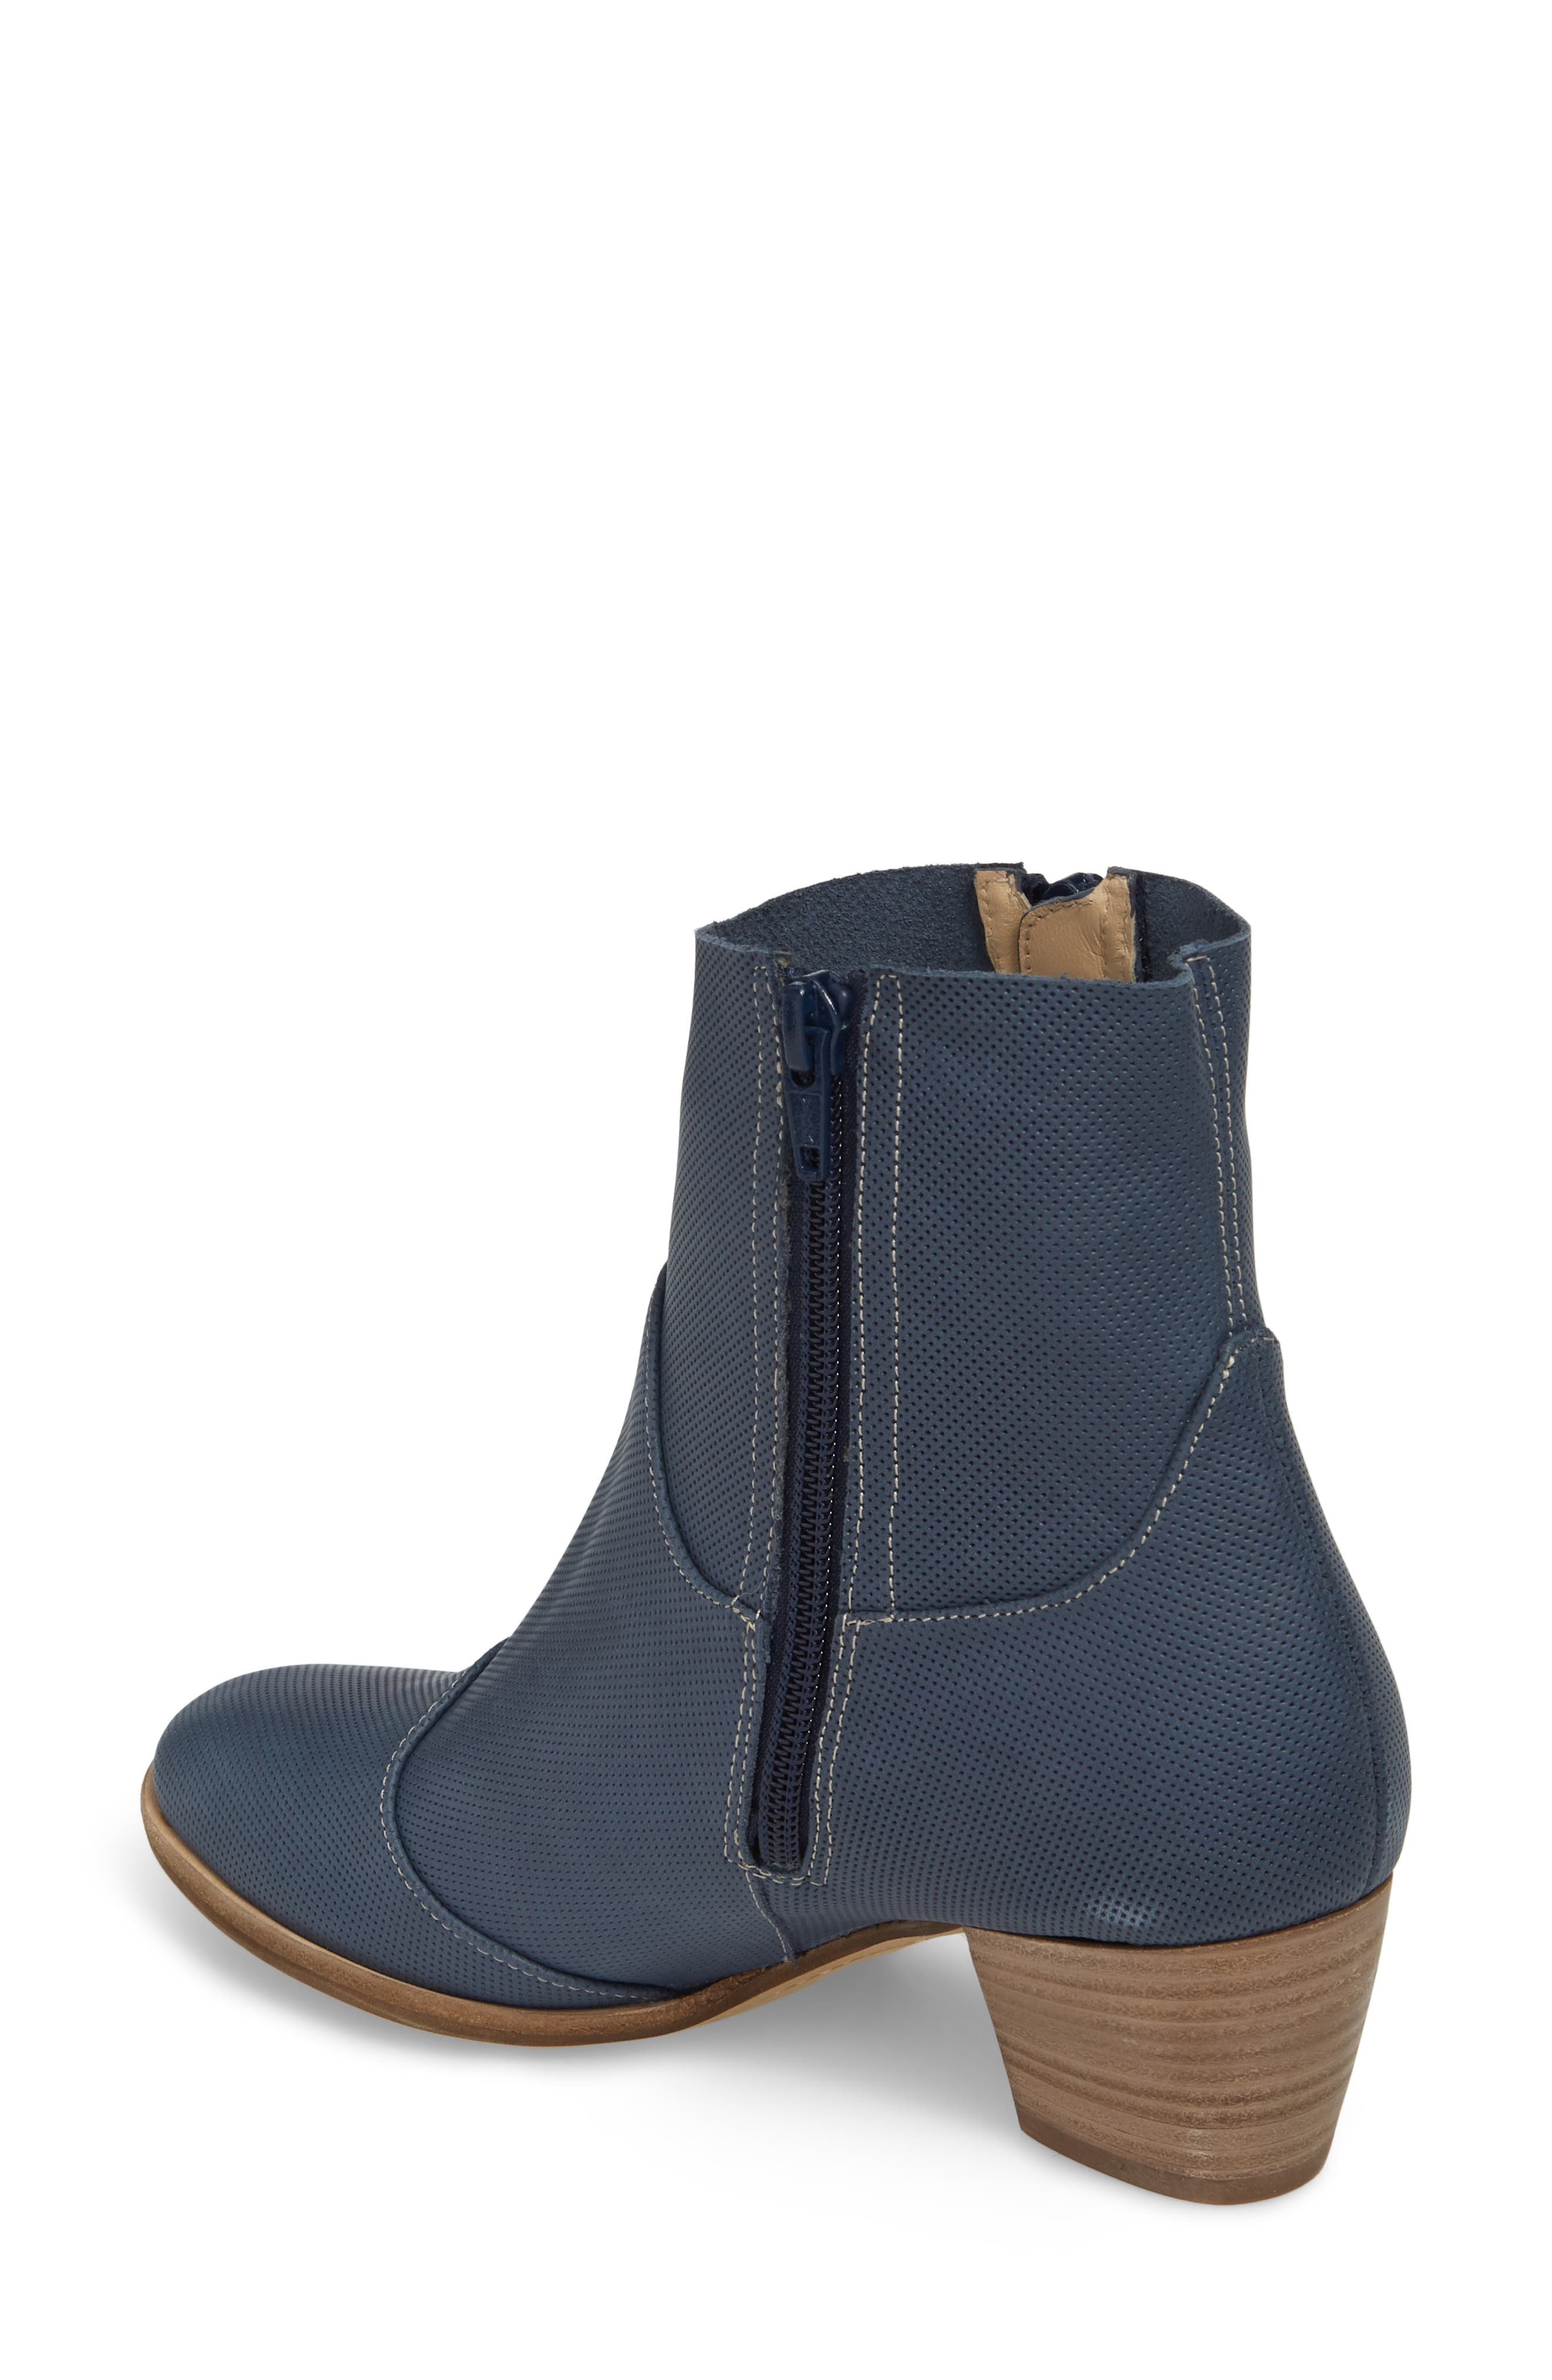 Robin Bootie,                             Alternate thumbnail 2, color,                             Blue Leather